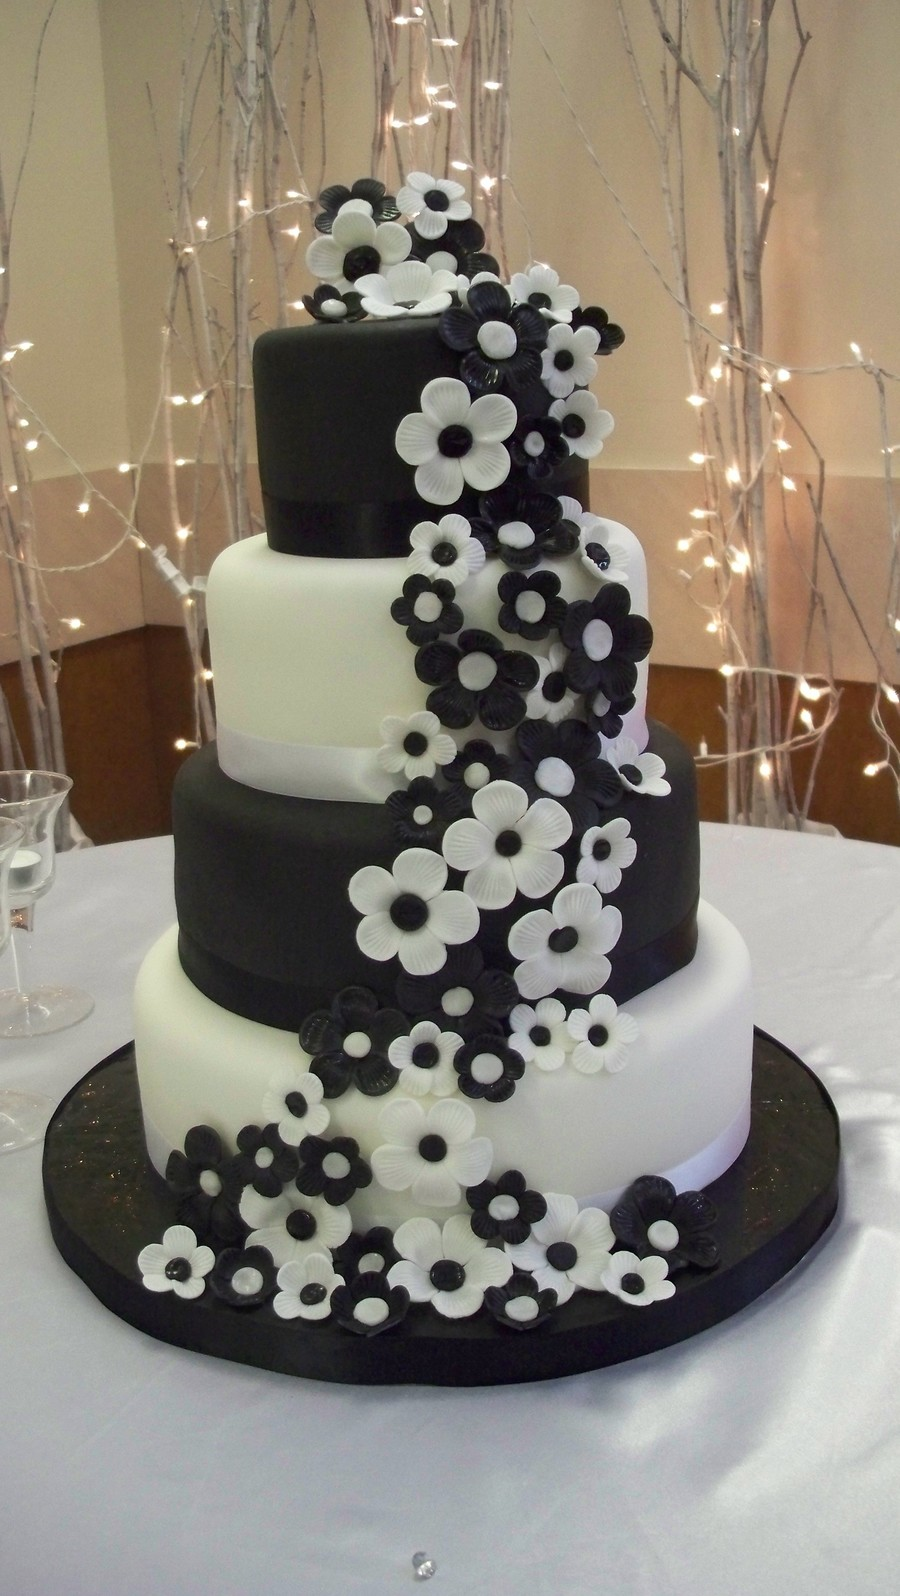 black and white wedding cake images black and white wedding cake cakecentral 11844